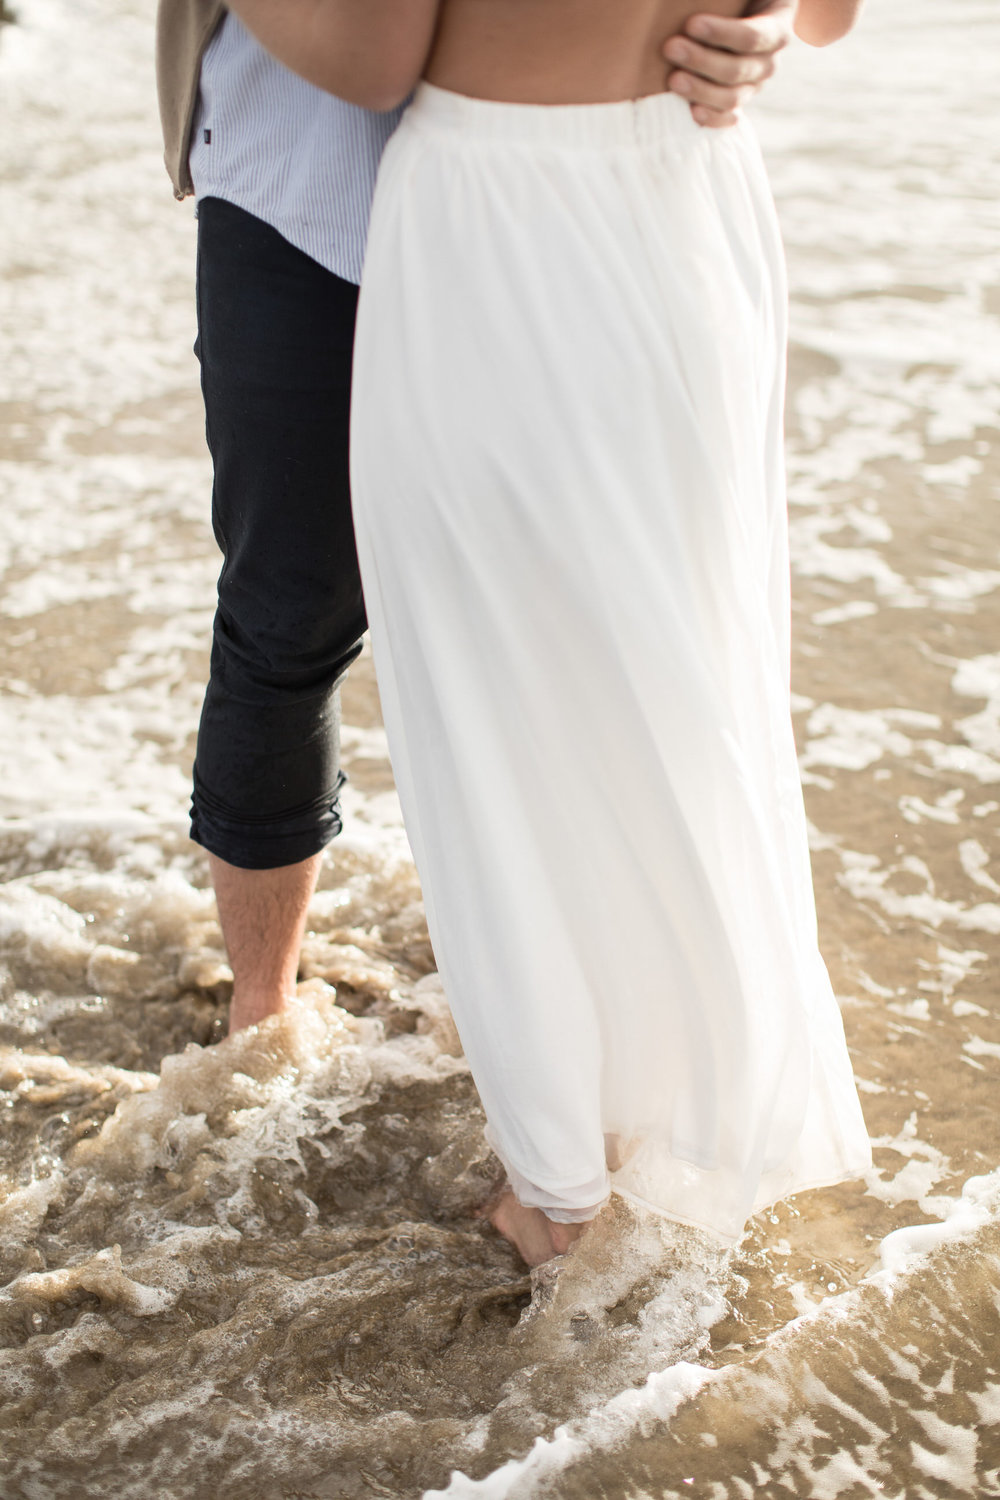 CANNONBEACHENGAGEMENTS (37 of 58).jpg